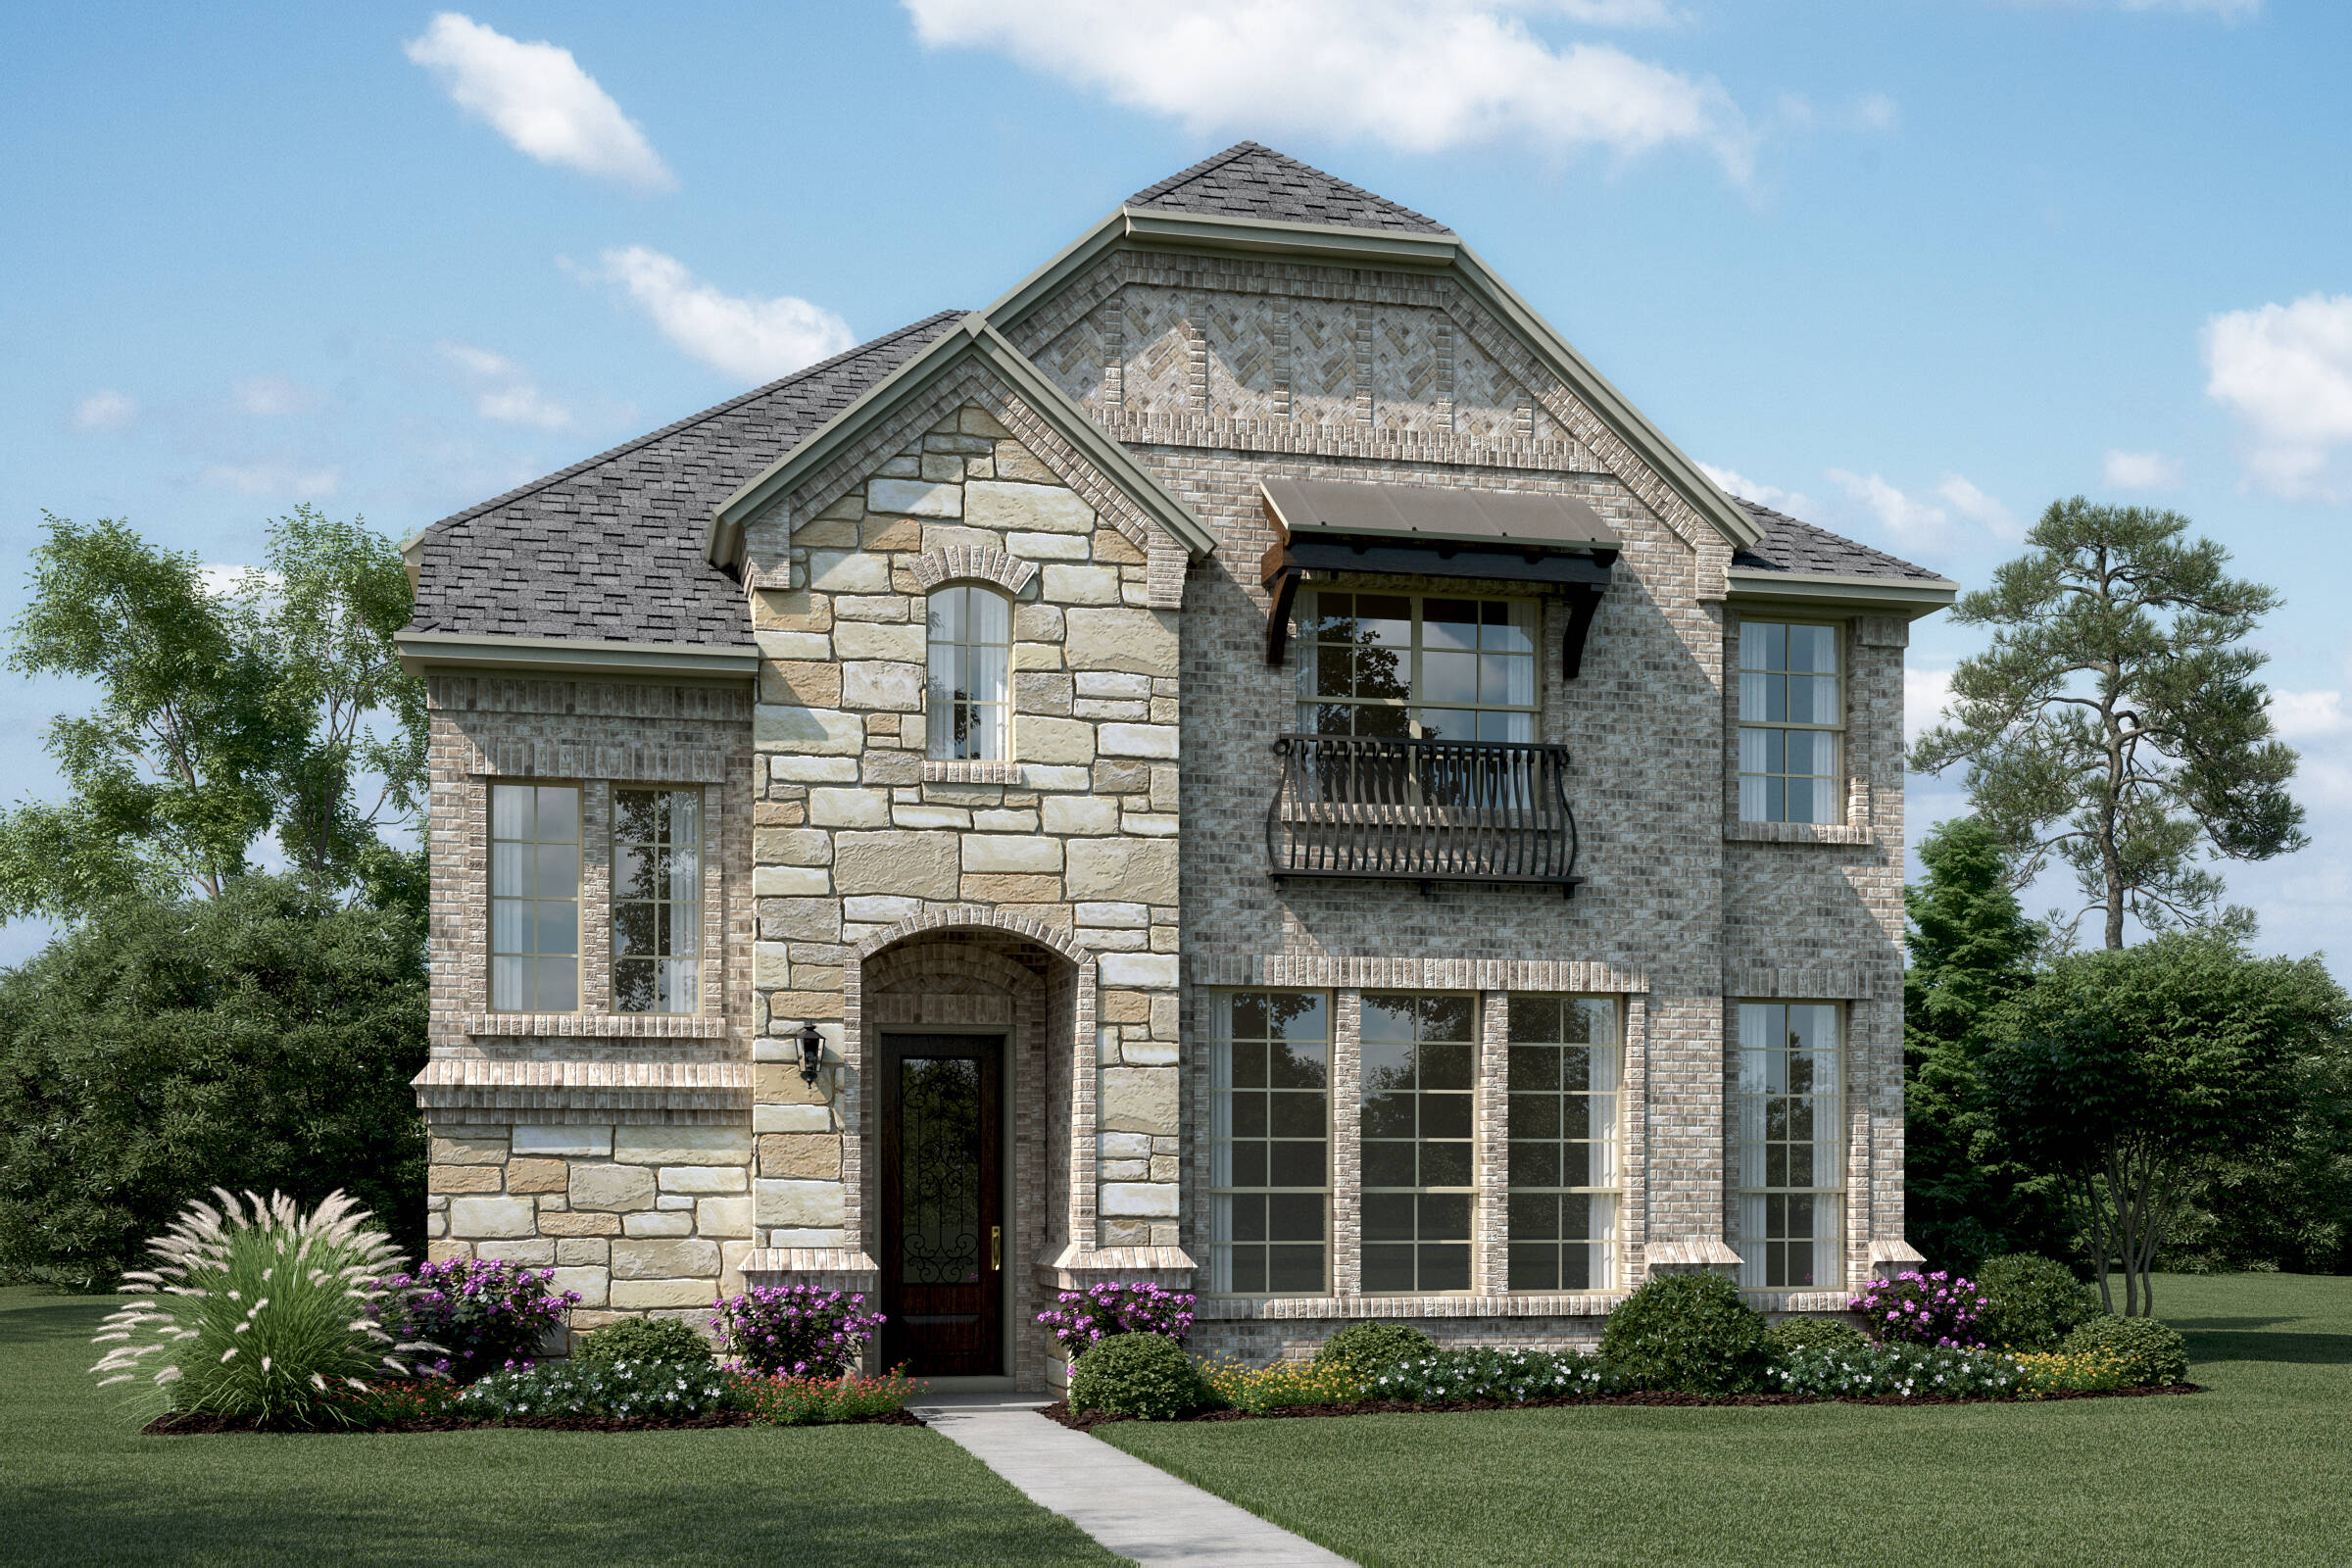 Riverchase S Stone new homes Dallas TX